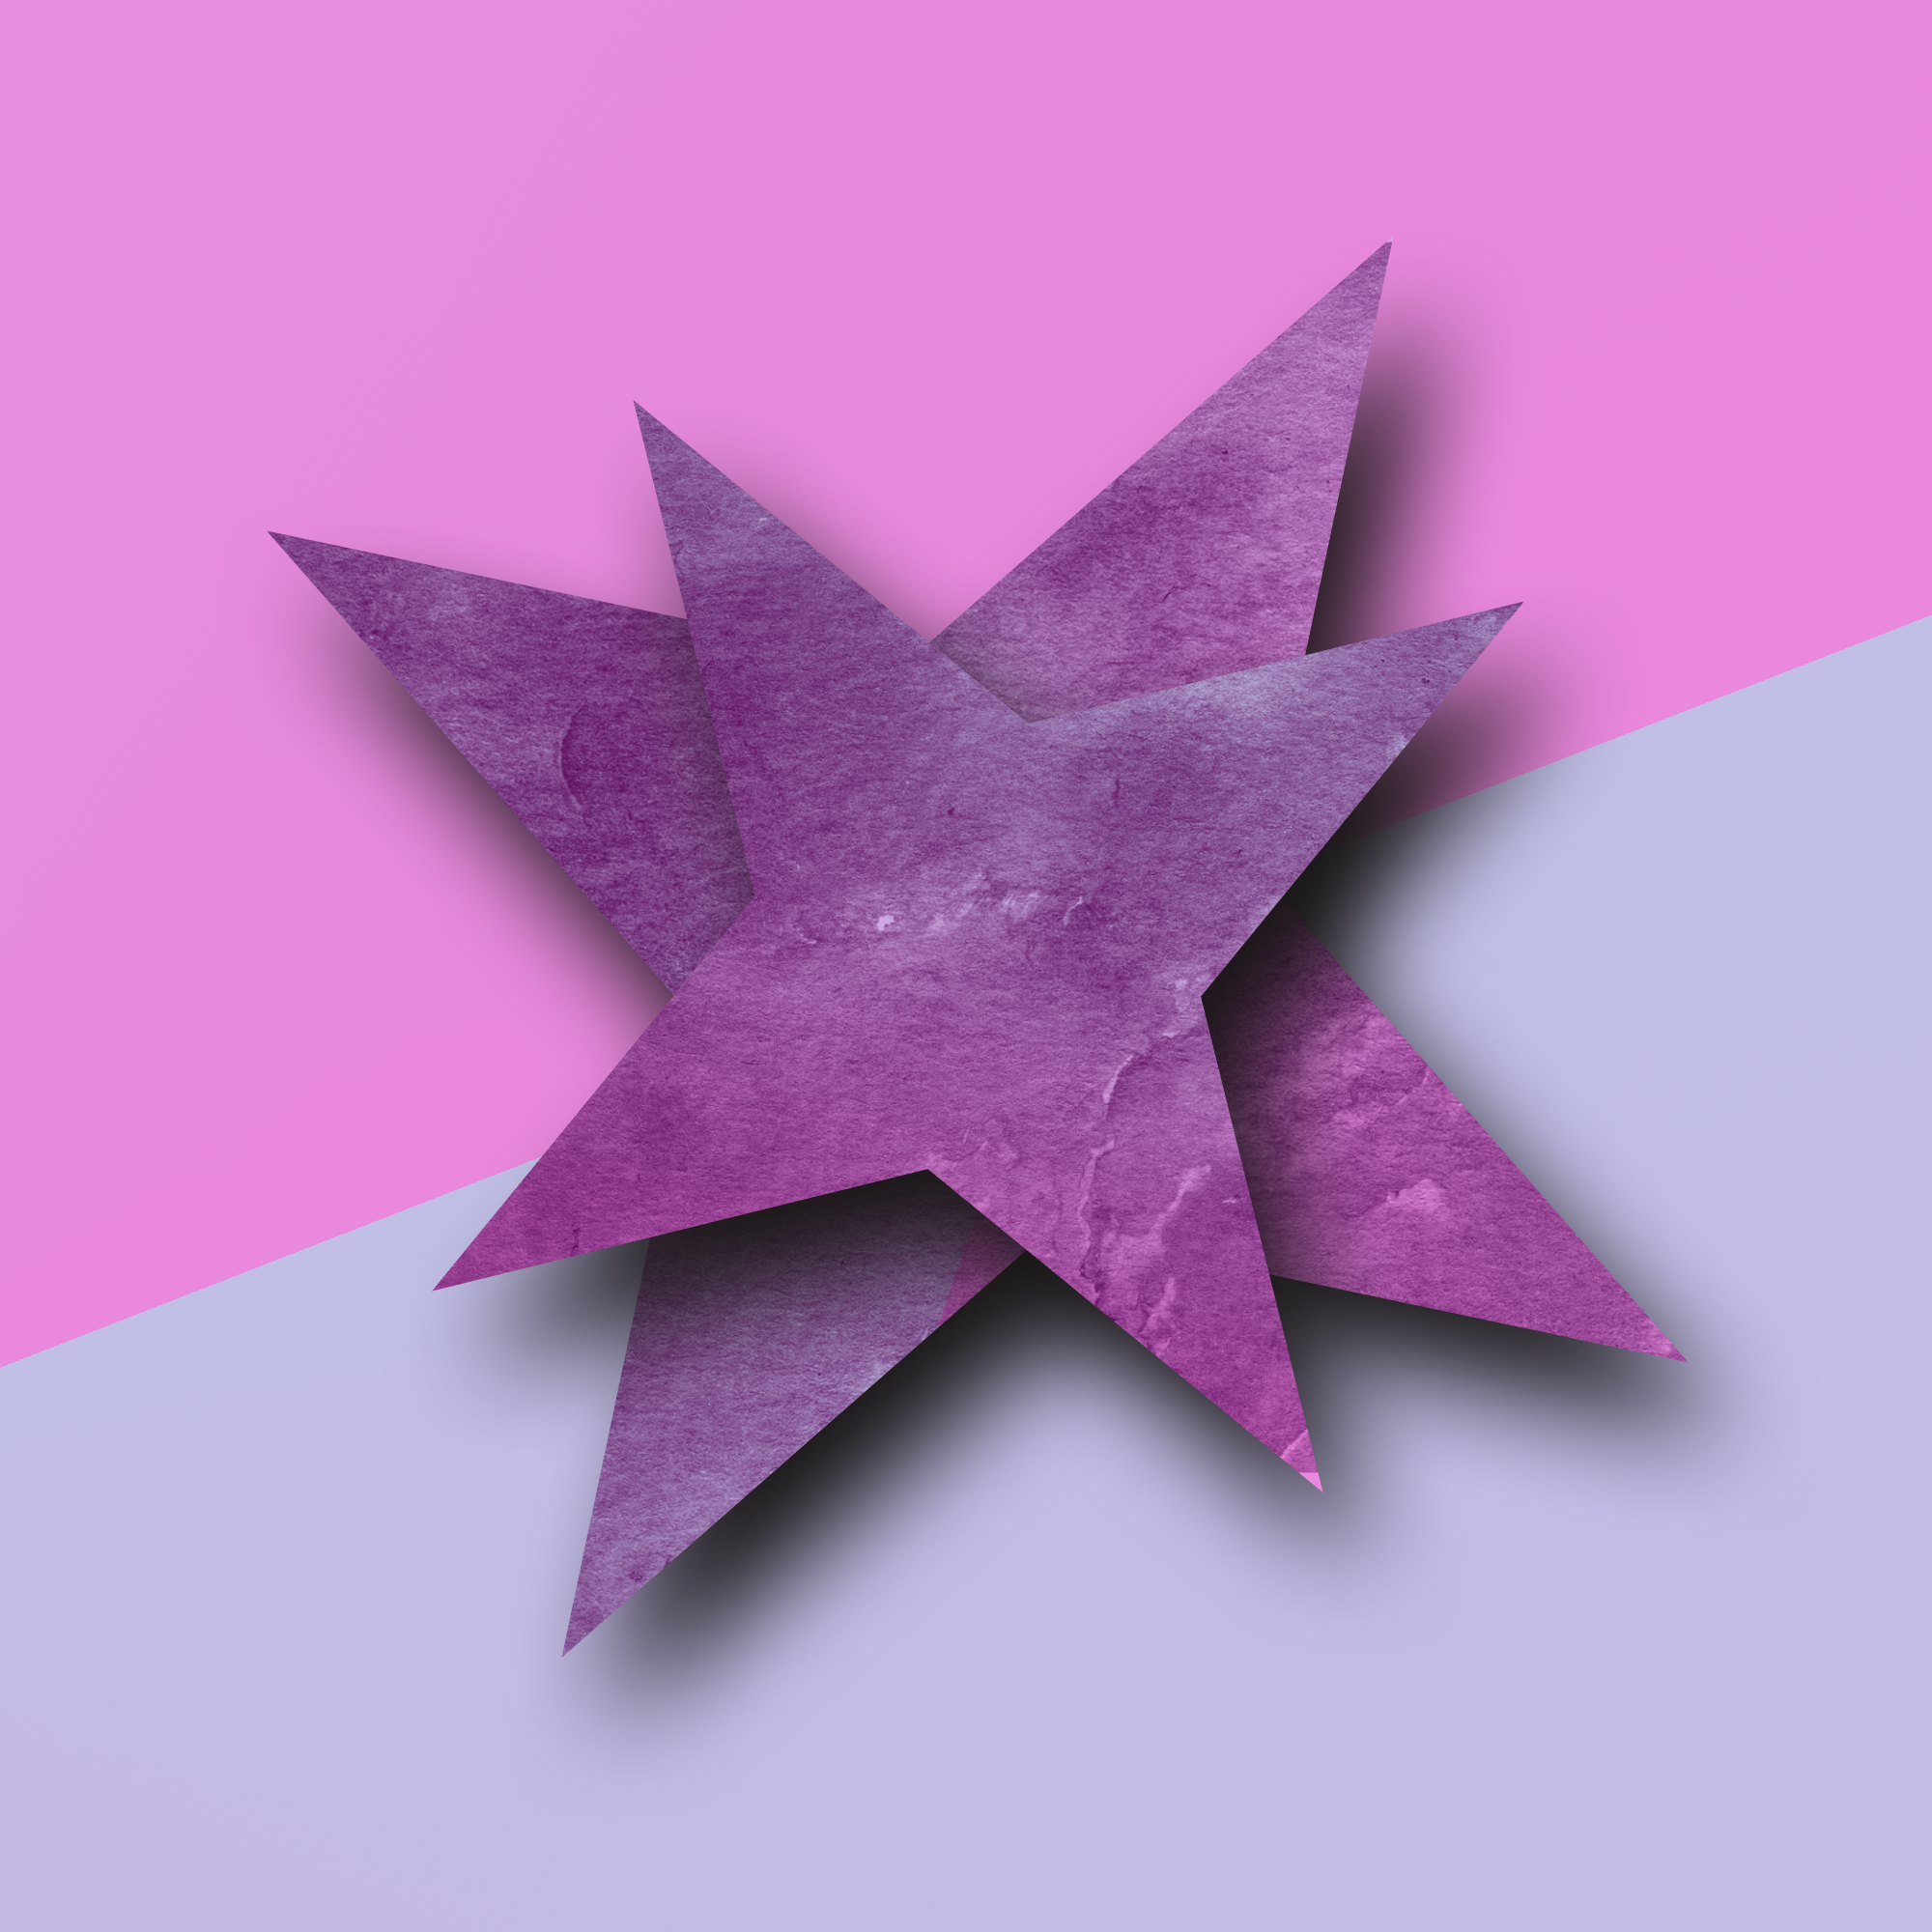 A star shape made with paper